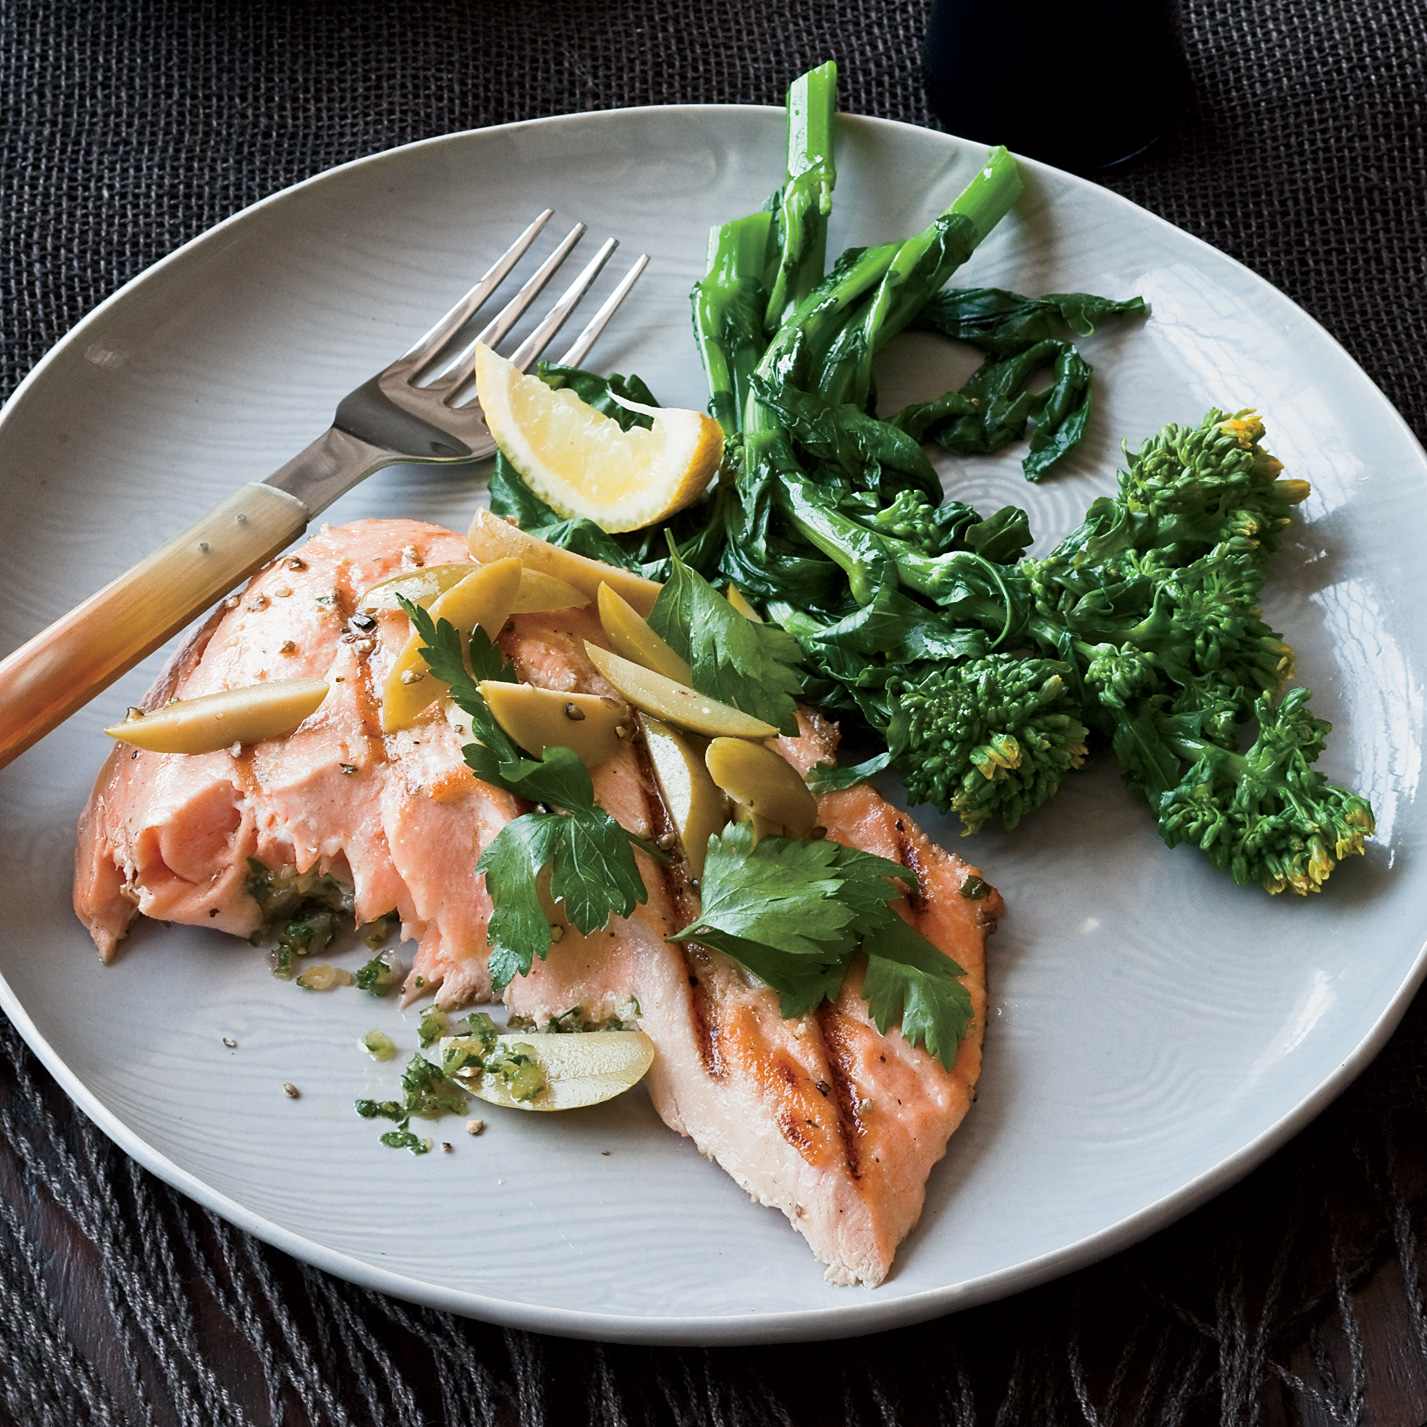 200910-r-grilled-lemon-salmon.jpg